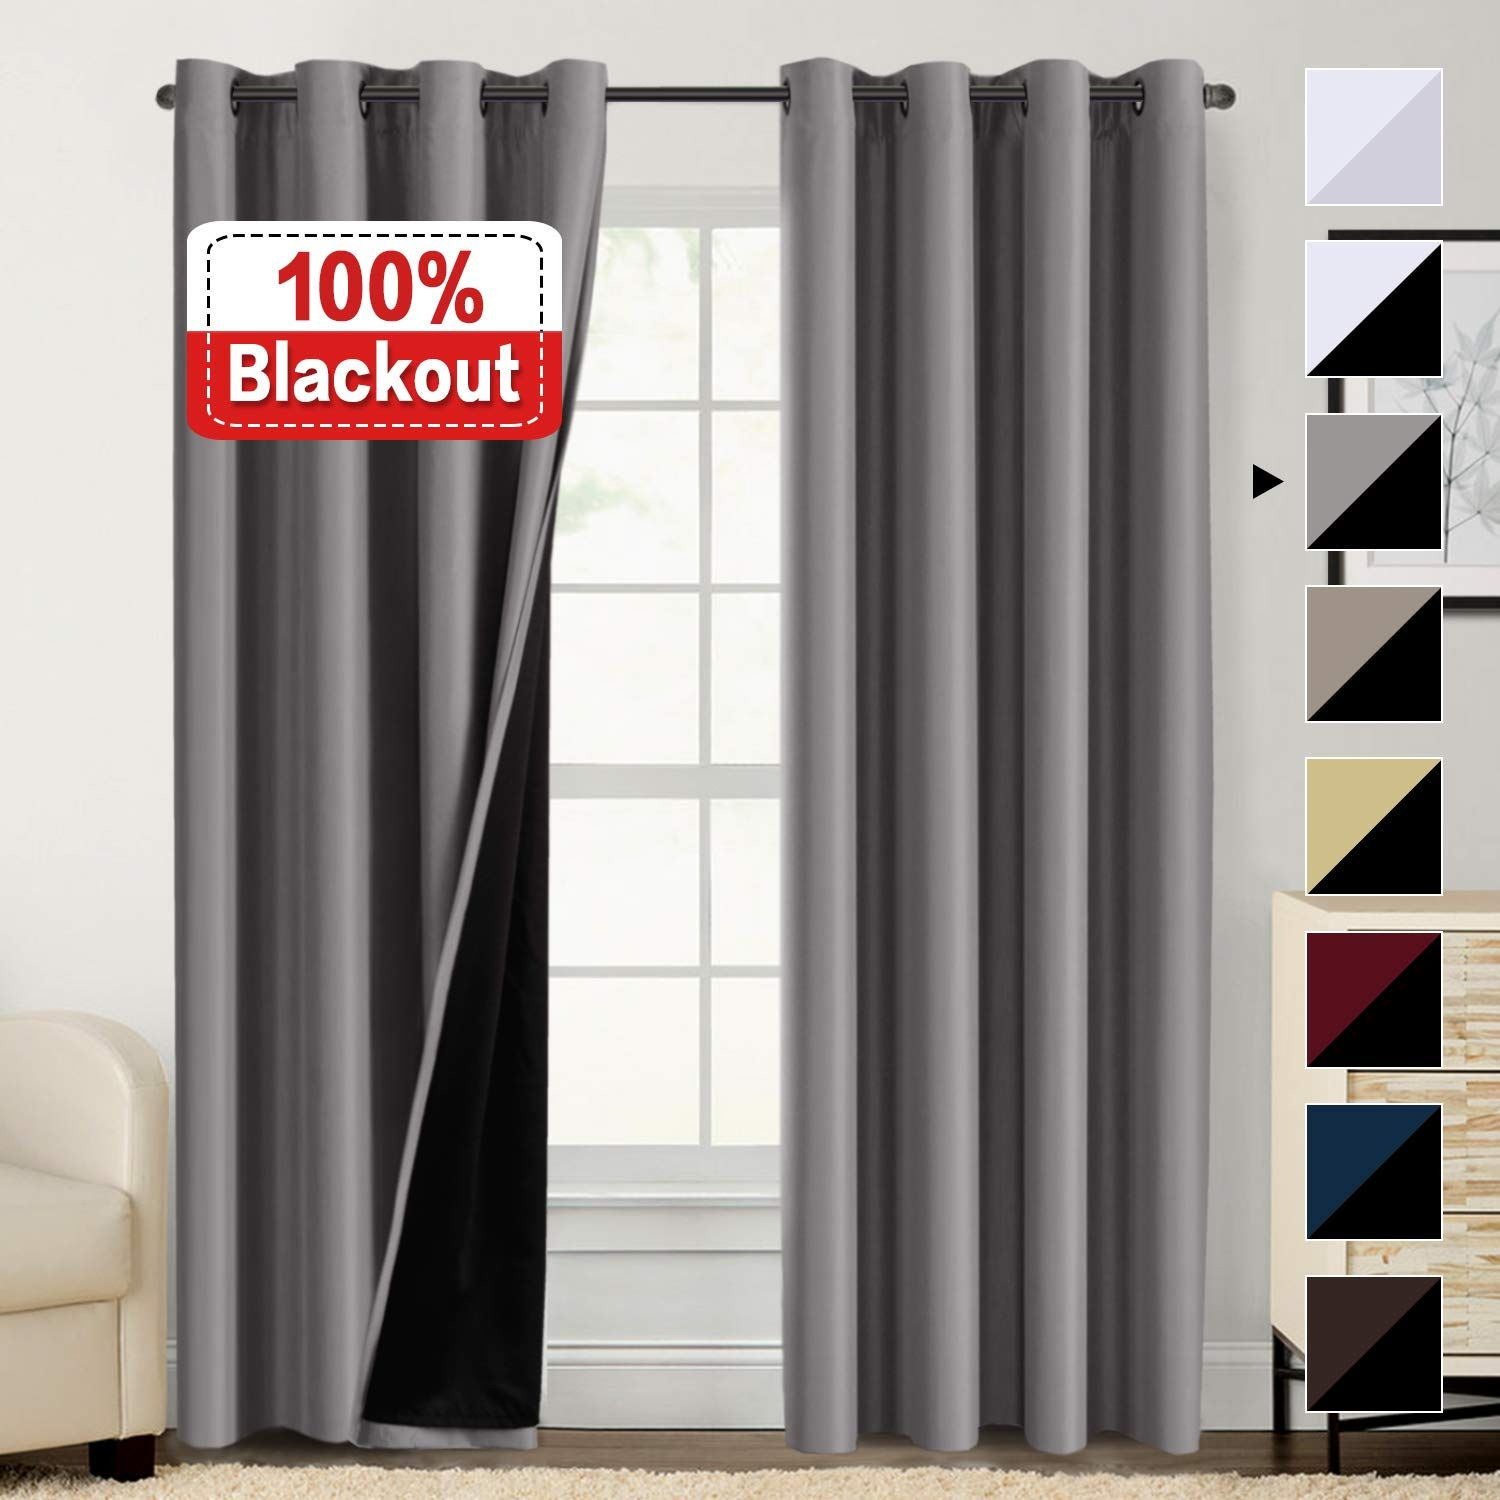 100 Blackout Curtains For Bedroom Energy Saving Pair Curtains For